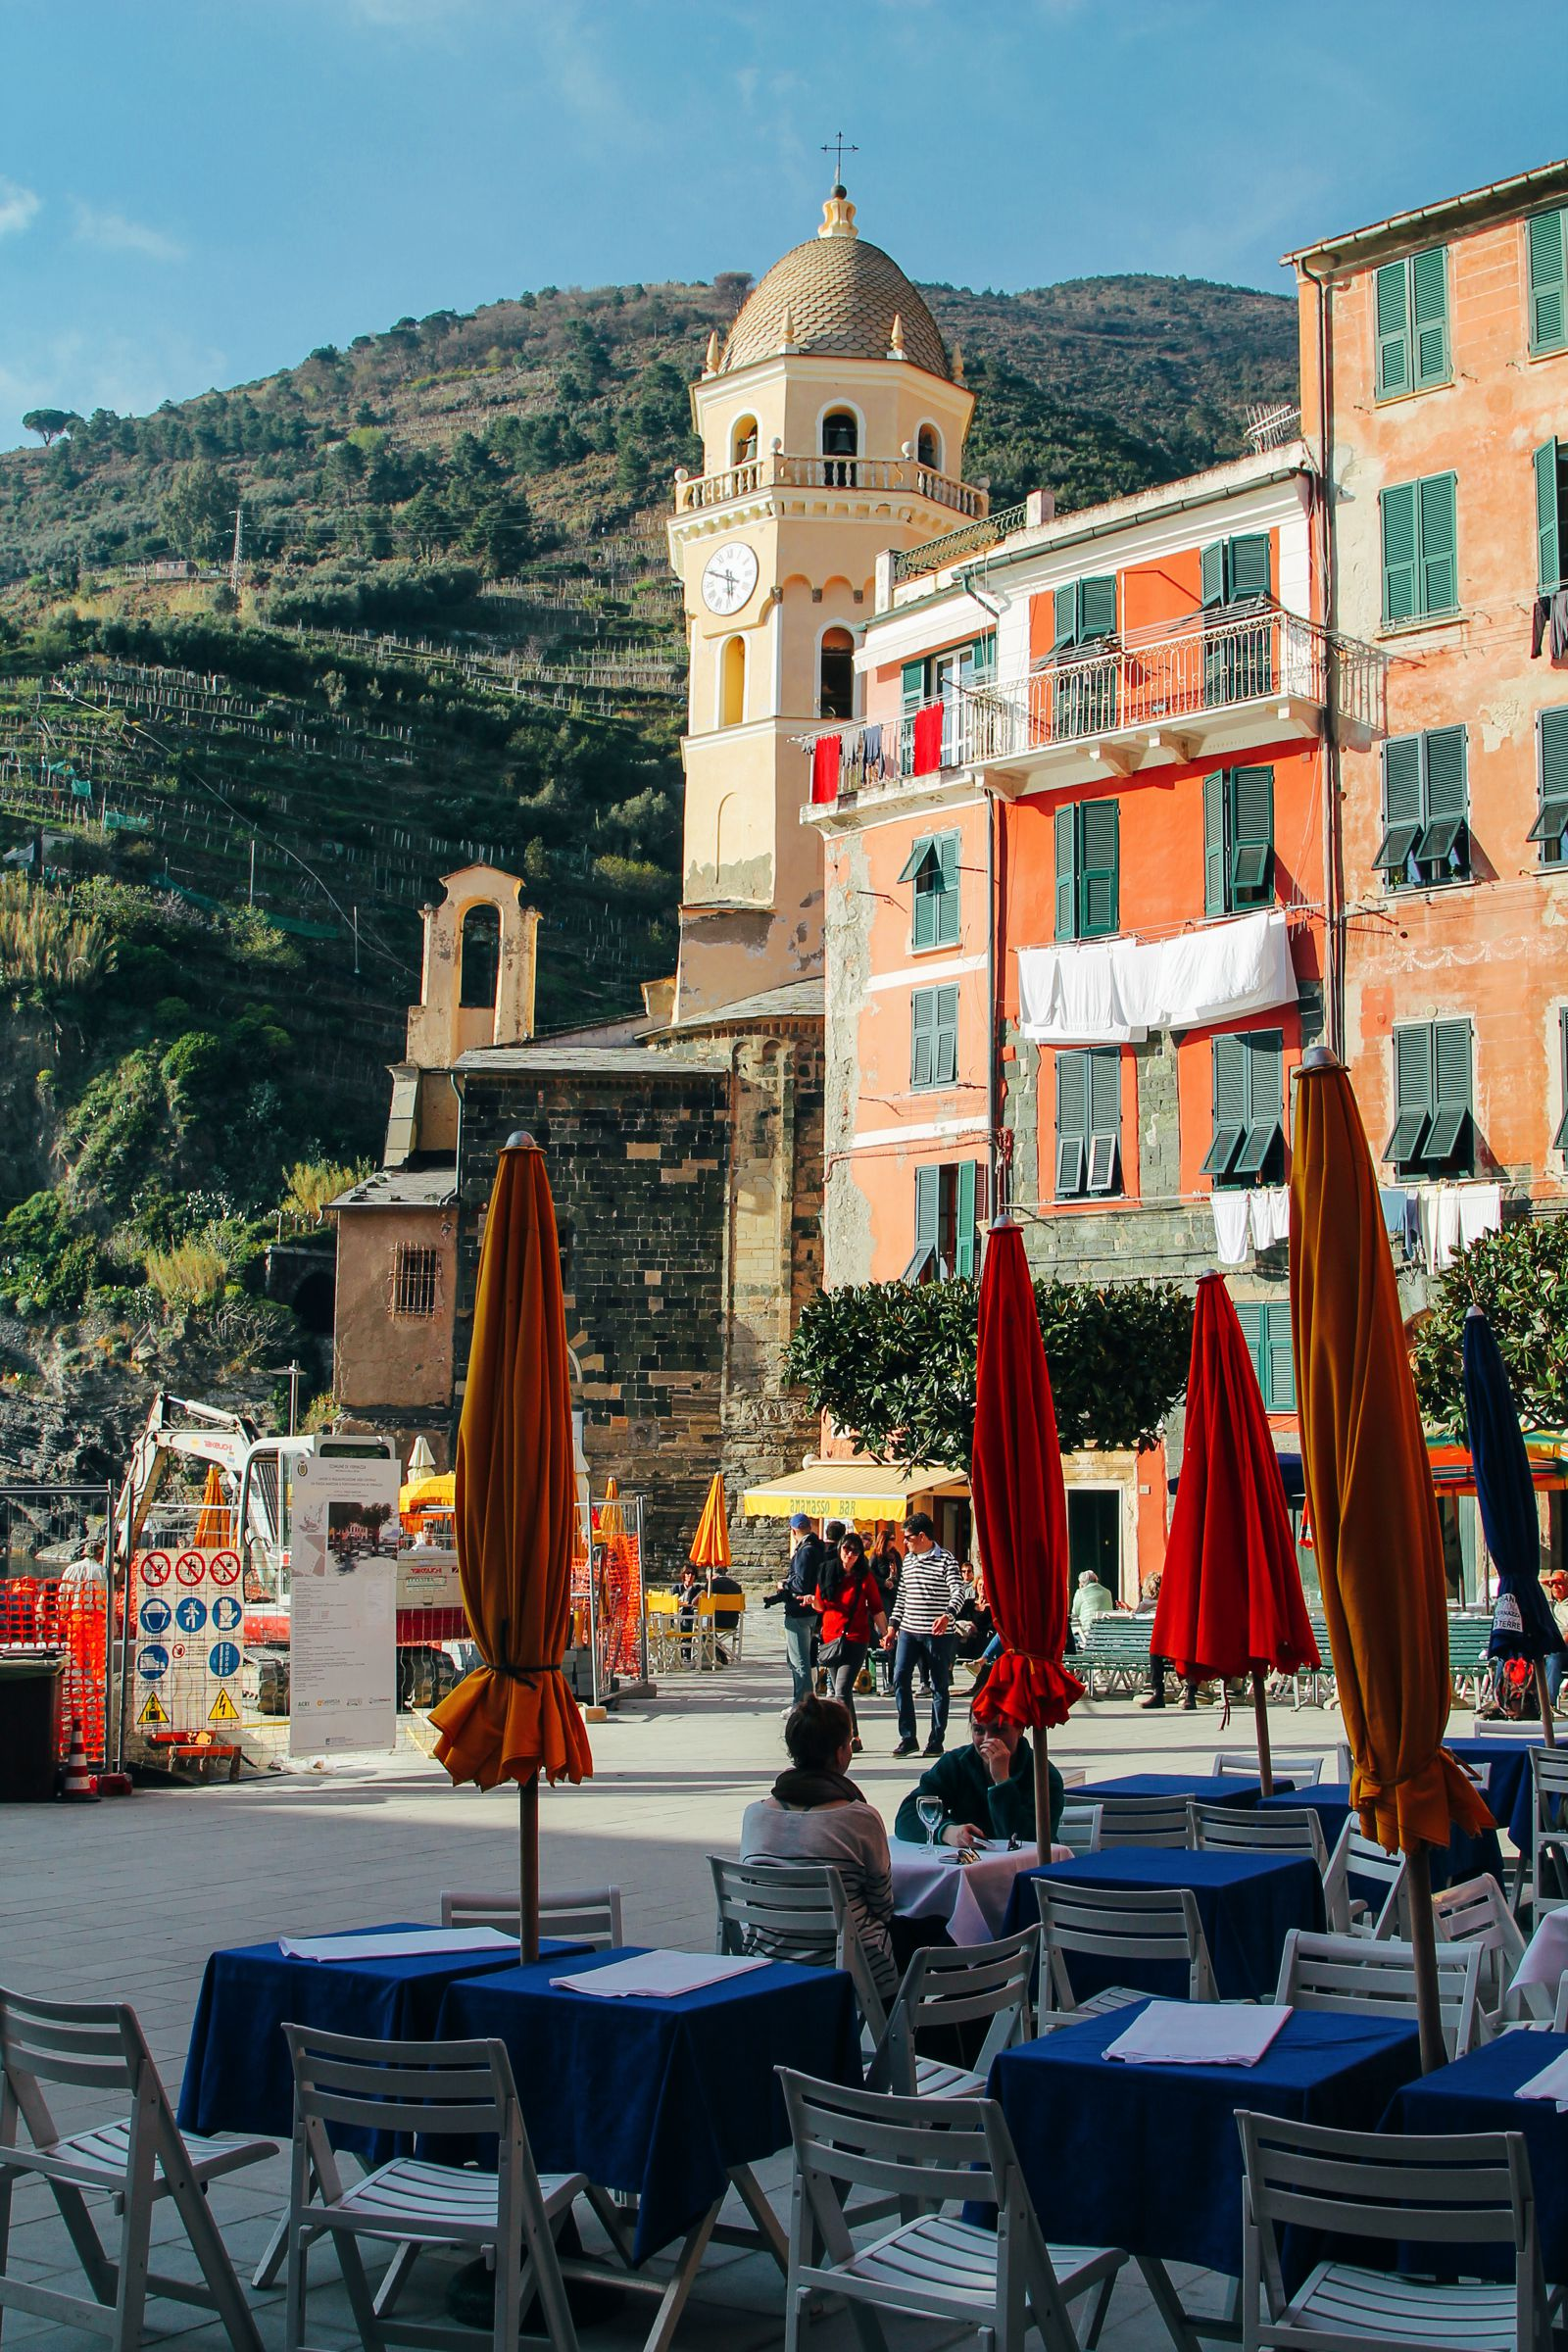 Vernazza in Cinque Terre, Italy - The Photo Diary! [4 of 5] (27)